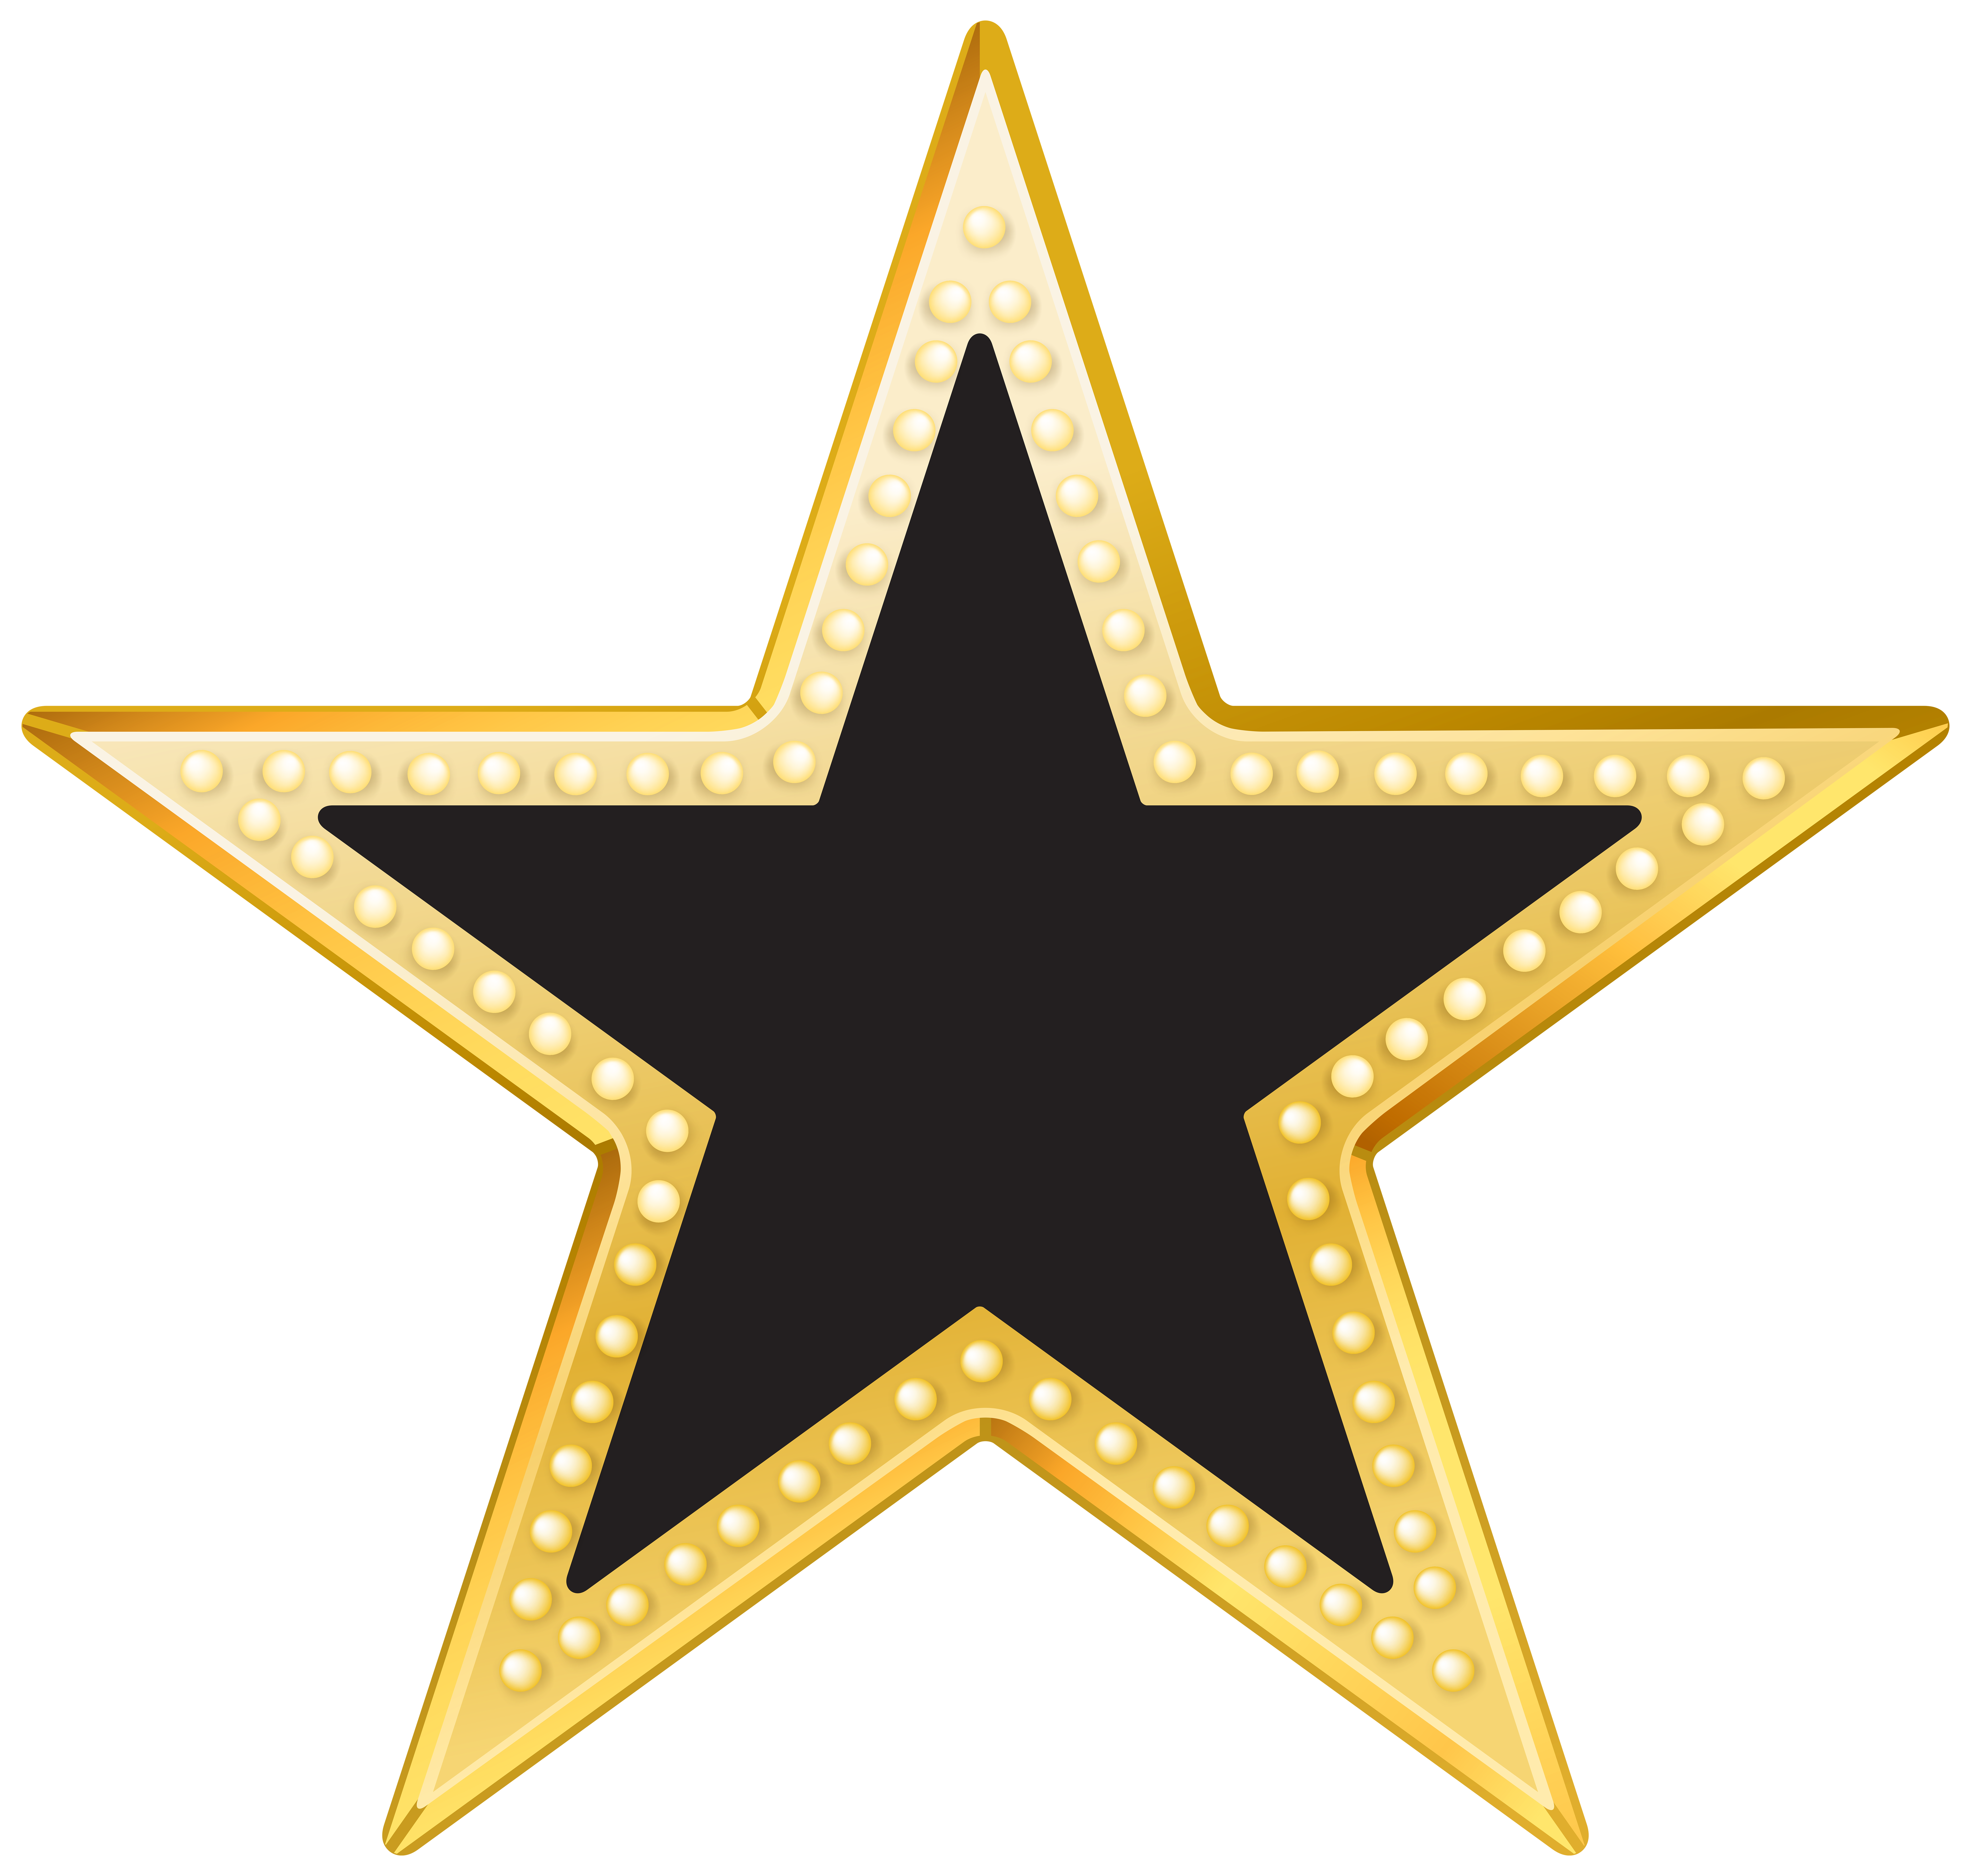 Star png. Gold and black transparent clipart stock